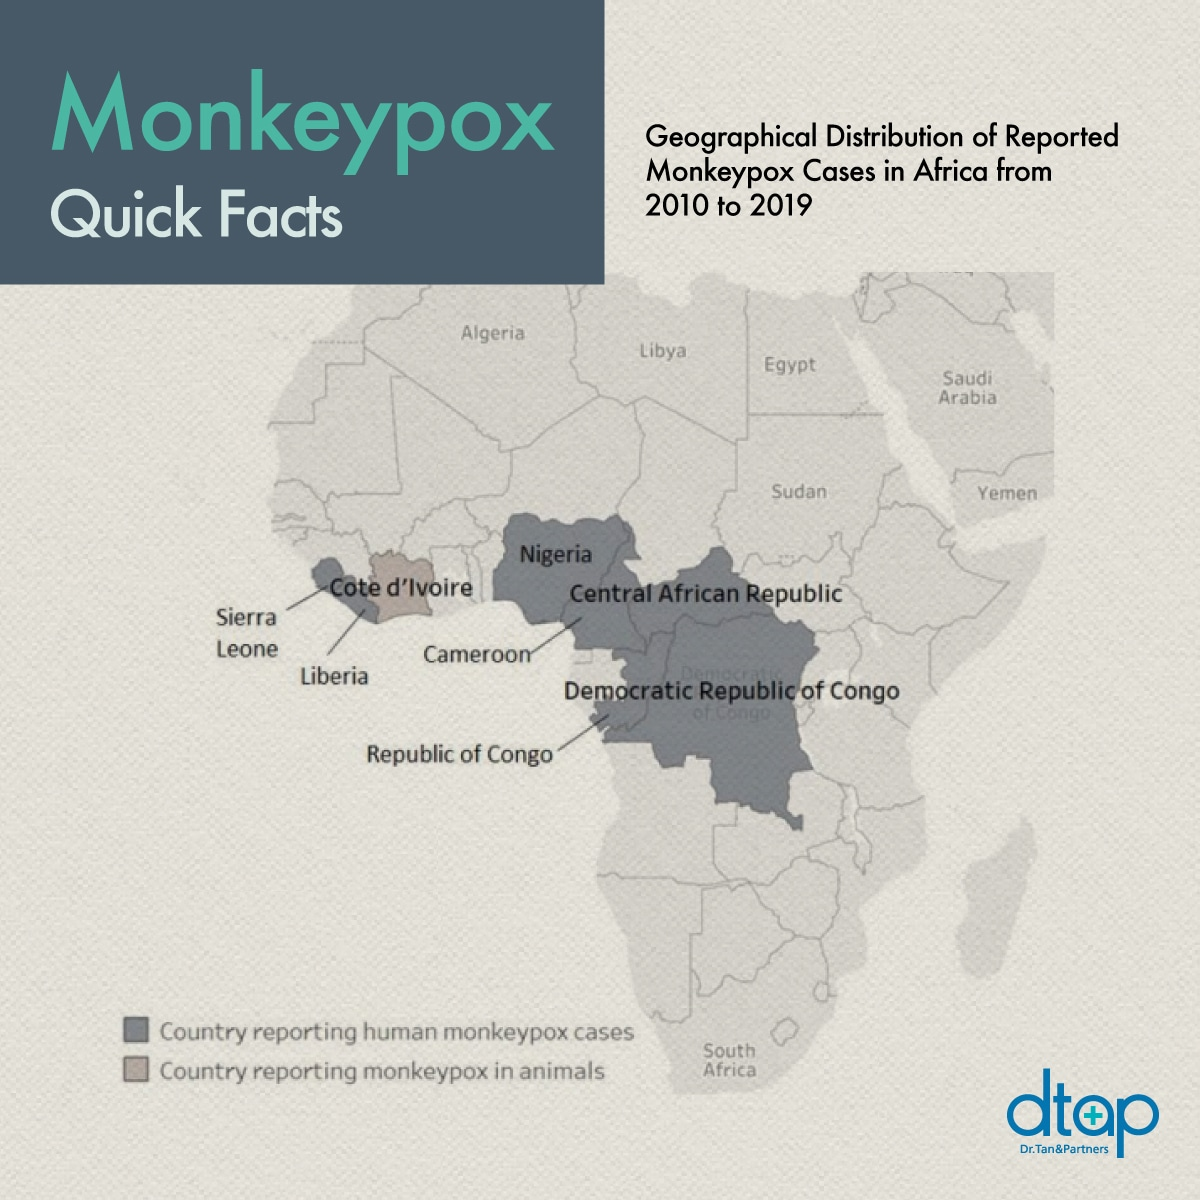 Monkeypox cases in Africa